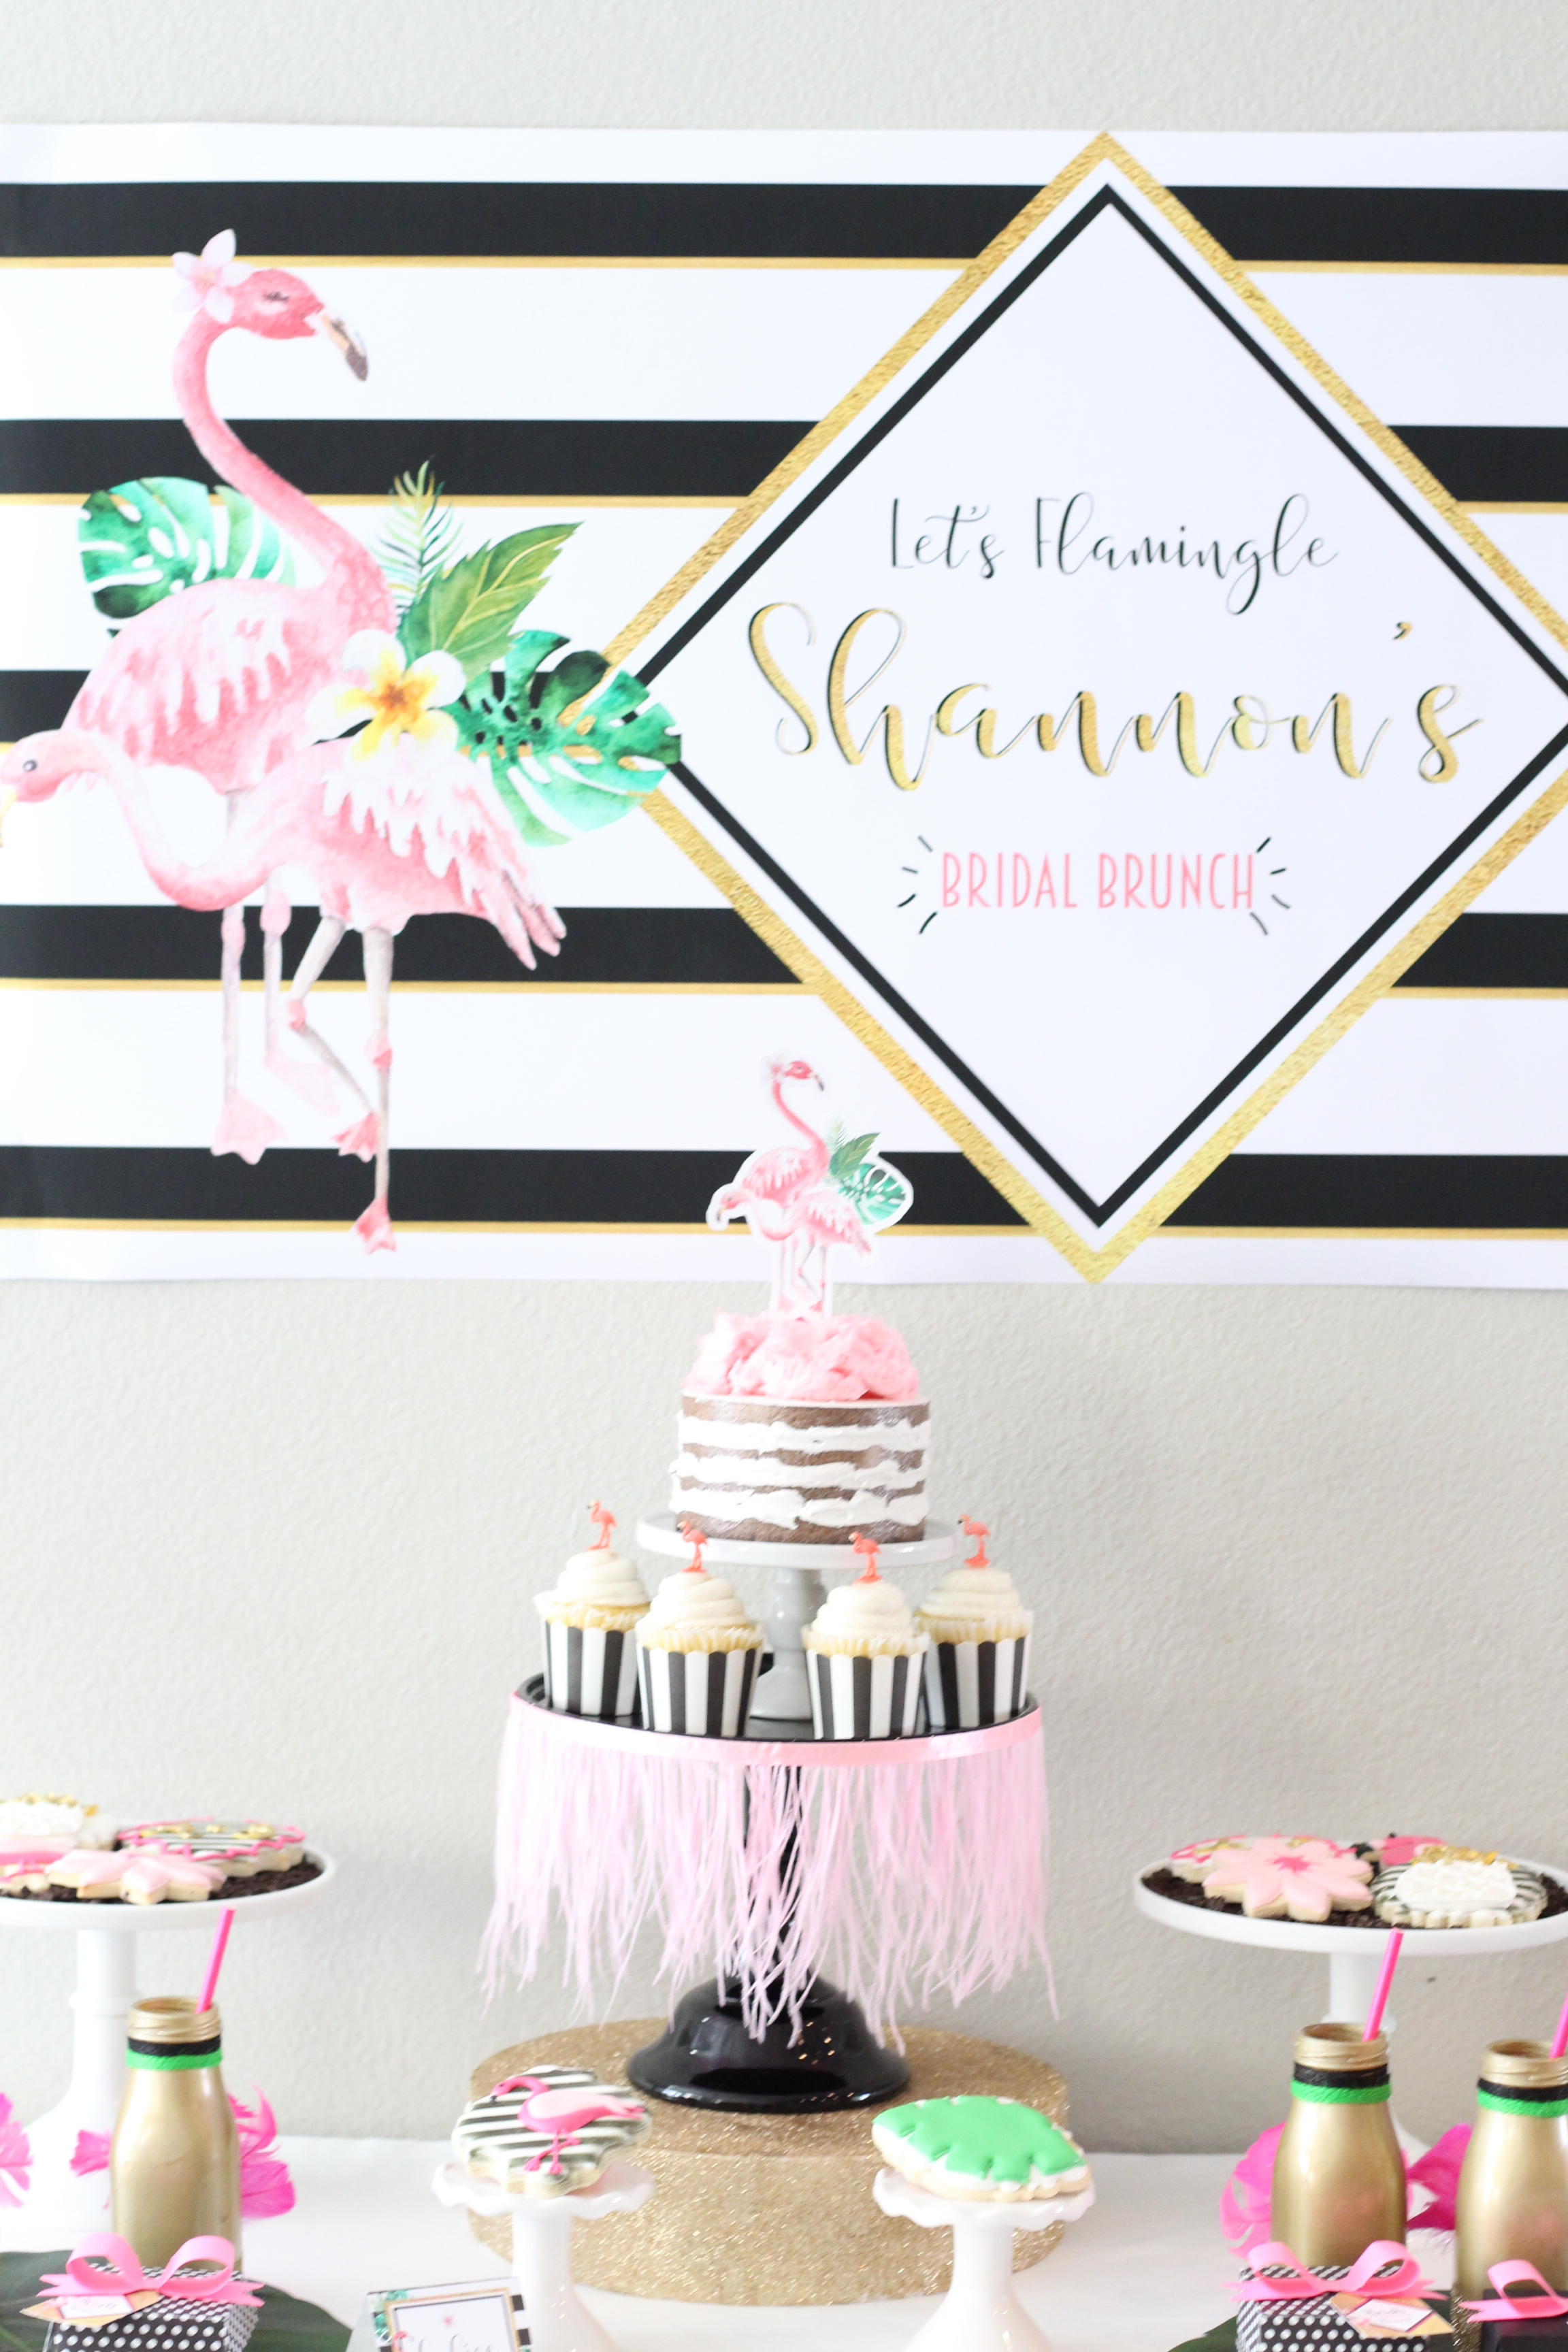 Party Inspiration for a Let's Flamingo Bachelorette Party or Bridal Shower - a fun flamingo party theme in pink, white, black, green and gold. Kate Spade Inspired dessert table. As seen on www.BrendasWeddingBlog.com